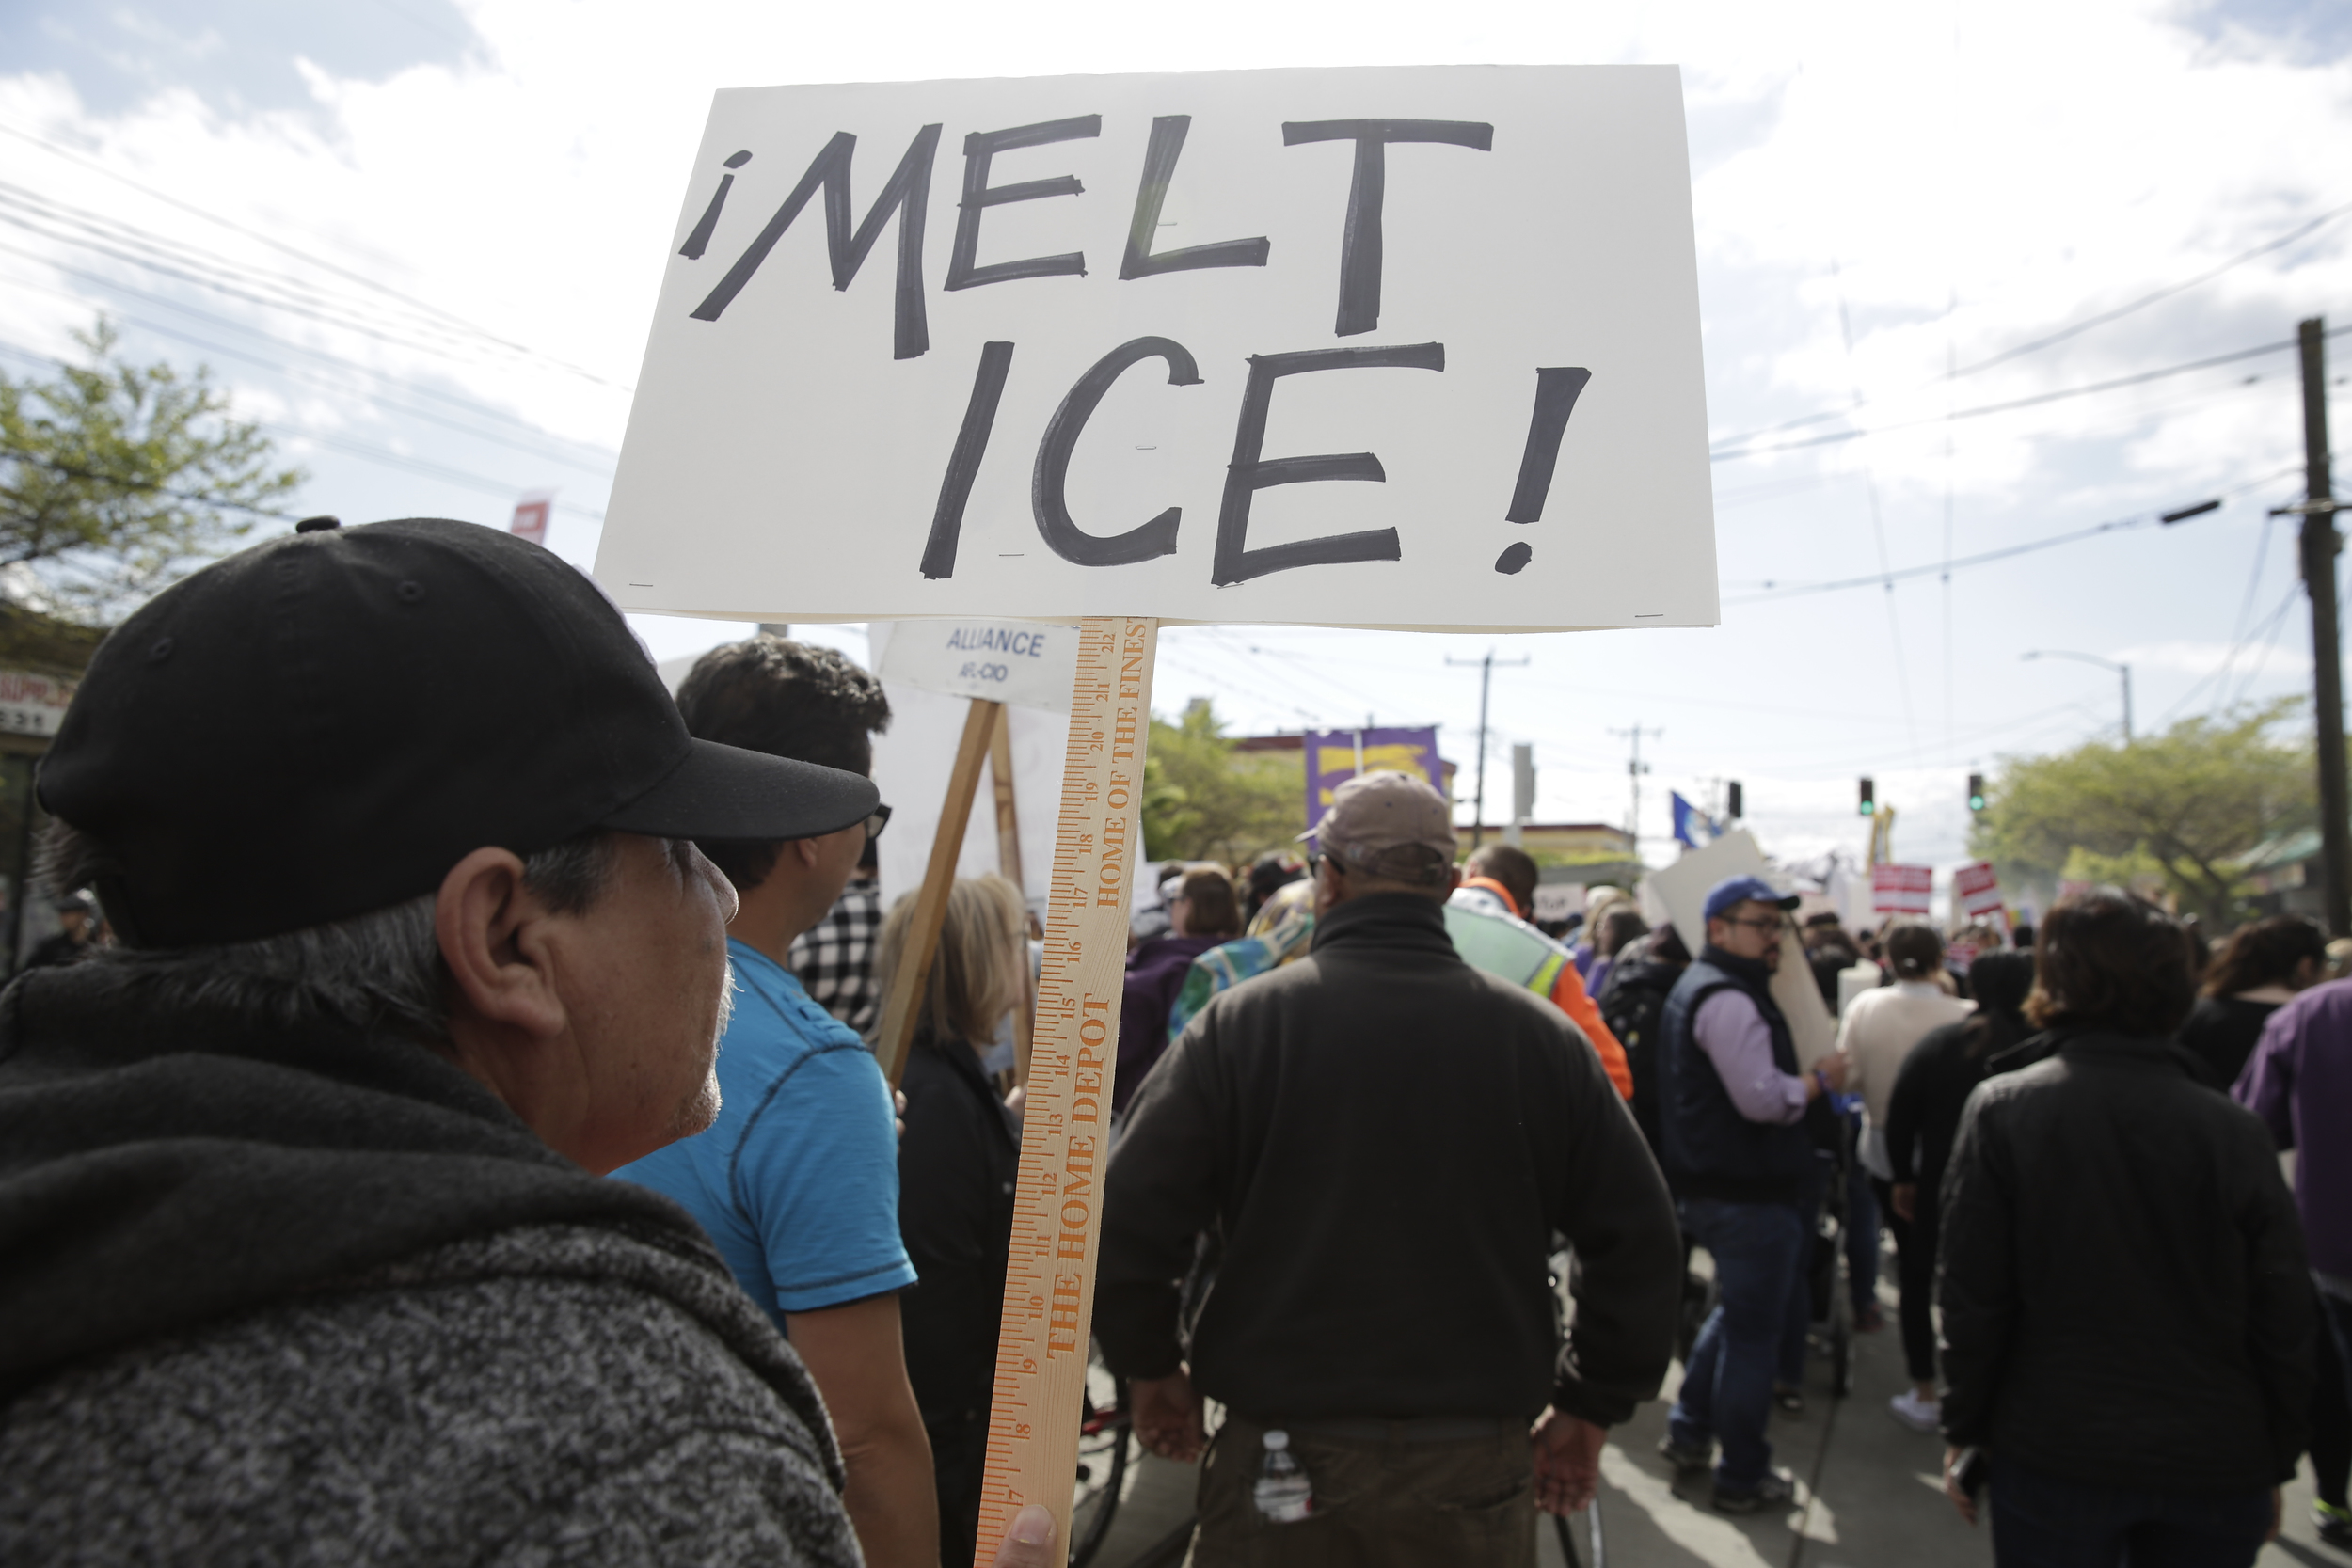 Clemente Rodriguez of Seattle carries sign referring to the Immigration and Customs Enforcement (ICE) sign during the annual May Day March for Workers and Immigrant Rights in Seattle